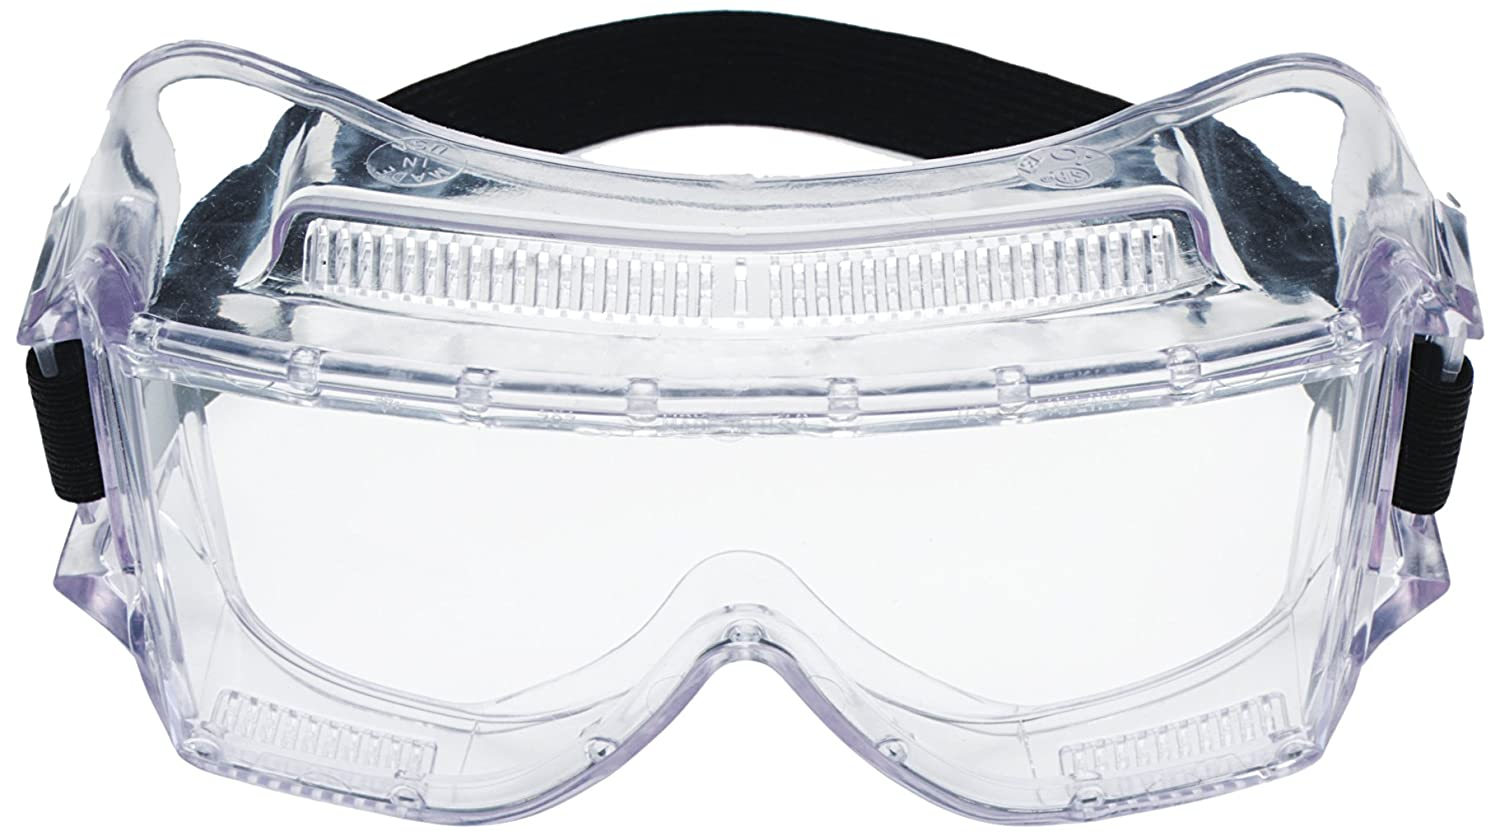 3M Centurion Safety Impact Goggle 452, 40300-00000-10 Clear Lens 10 ea/case